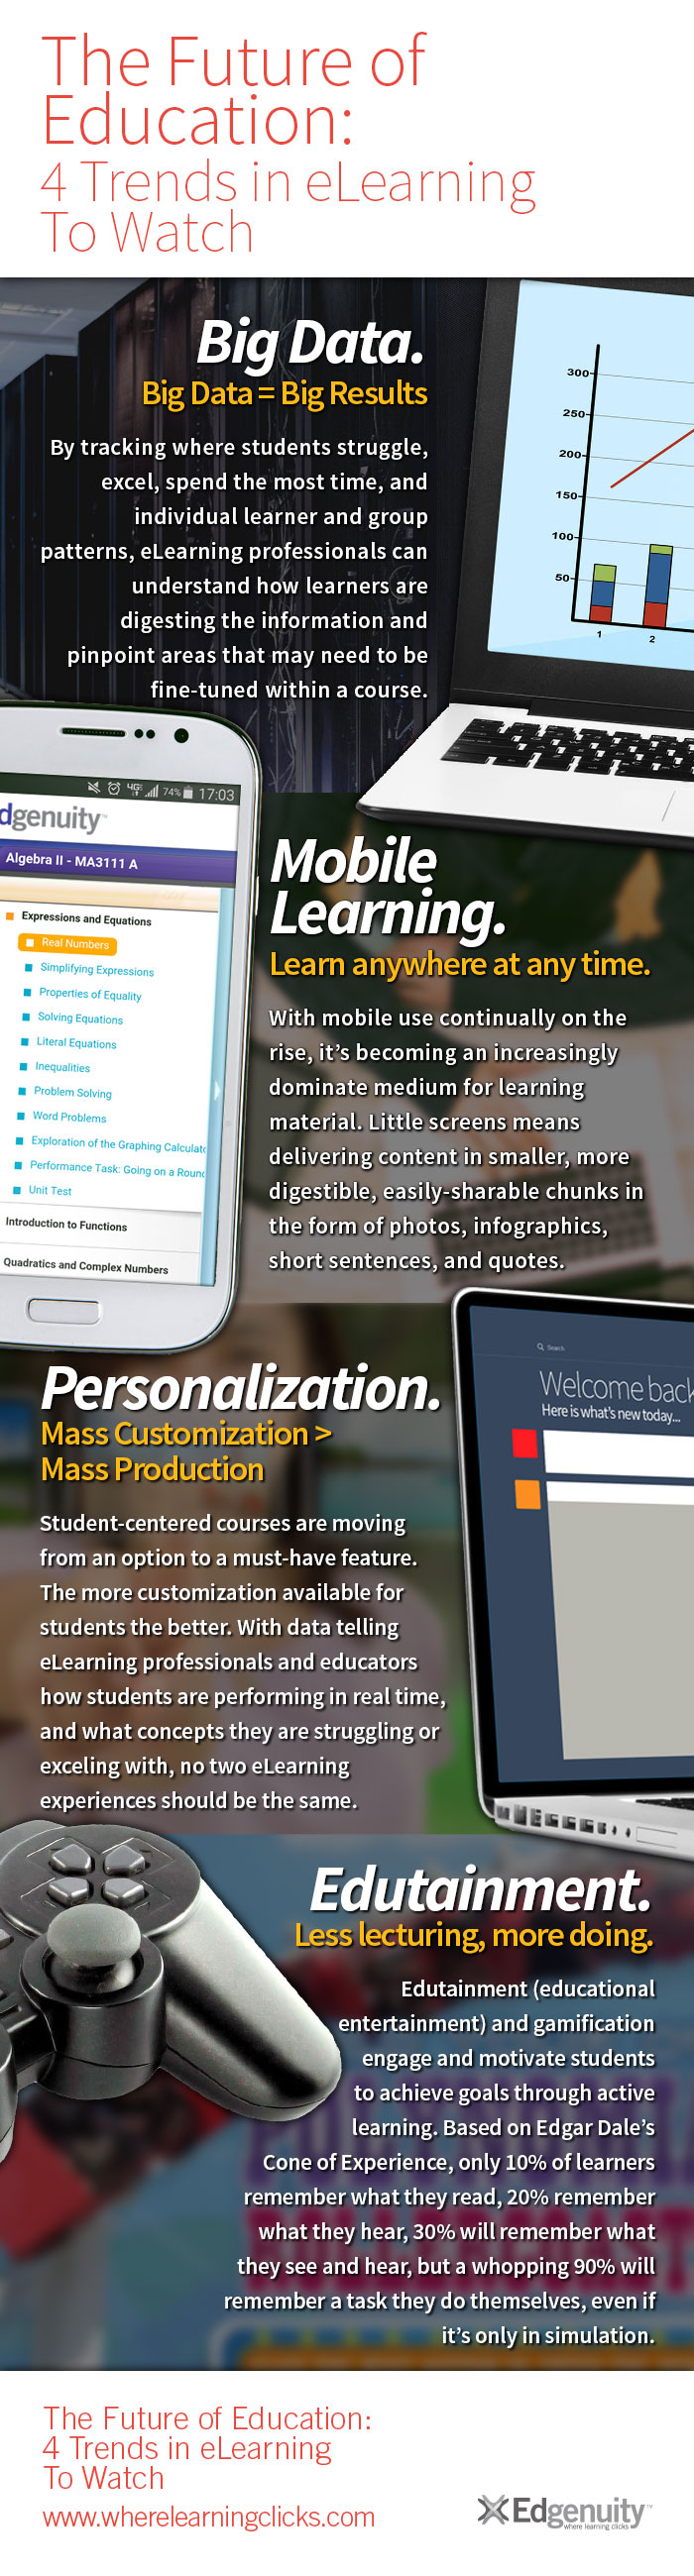 Data, M-Learning, Personalisation & Edutainment